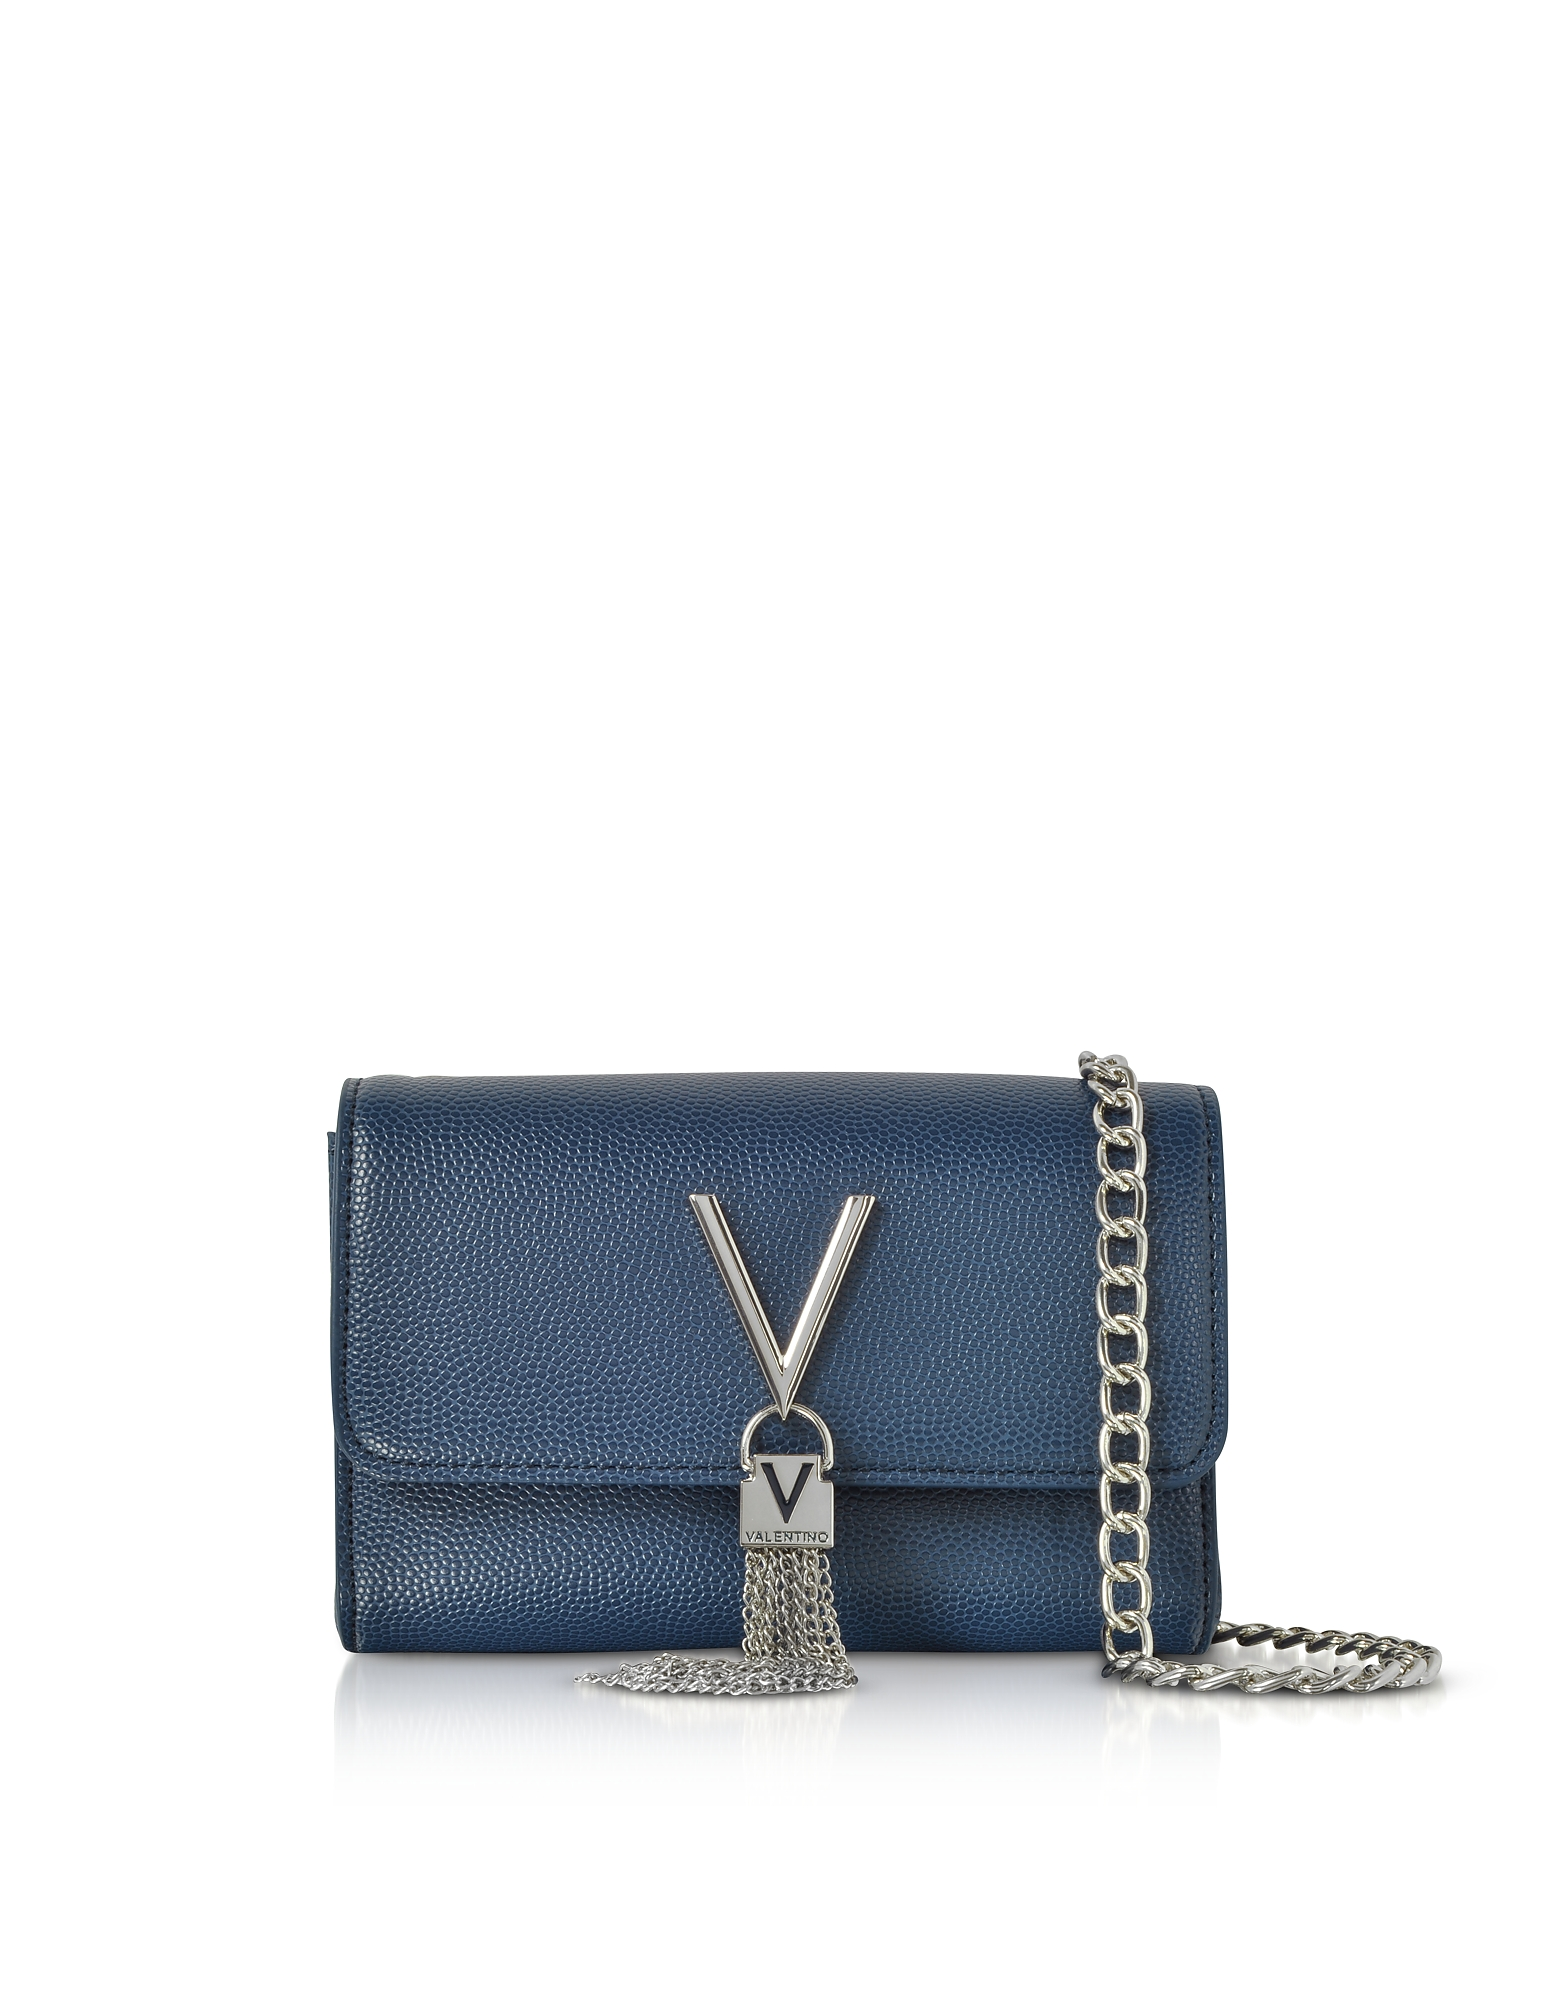 VALENTINO BY MARIO VALENTINO Blue Lizard Embossed Eco Leather Divina Mini Shoulder Bag